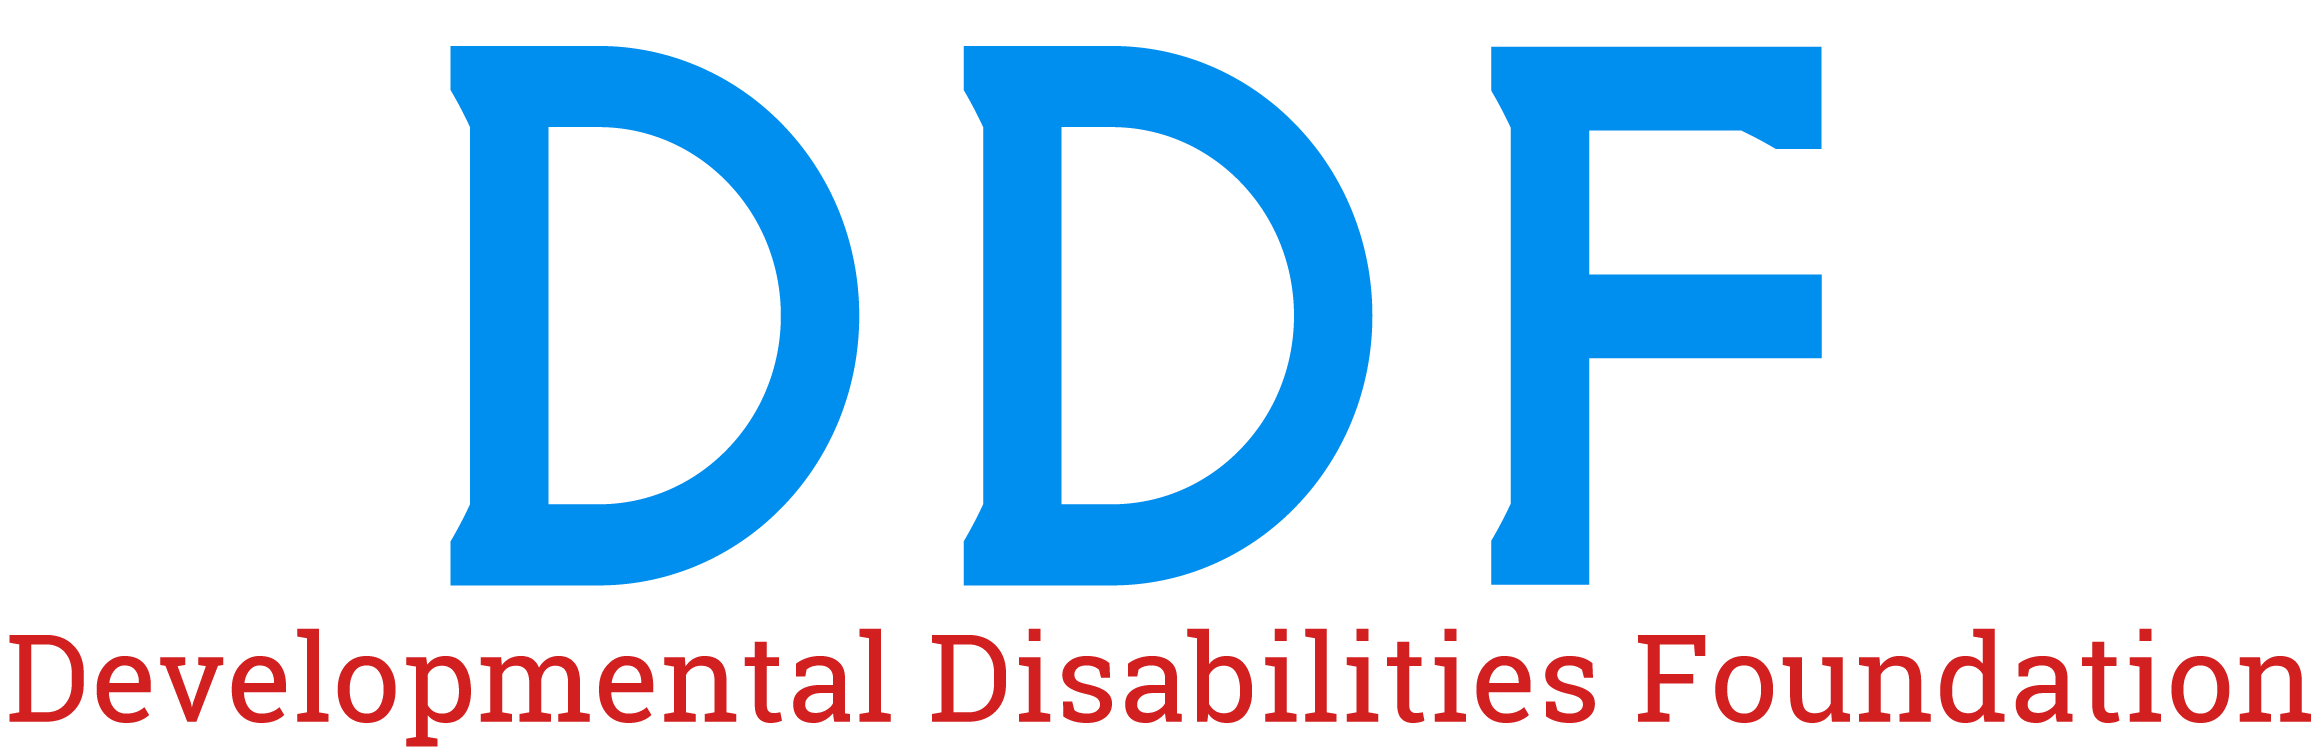 Developmental Disabilities Foundation